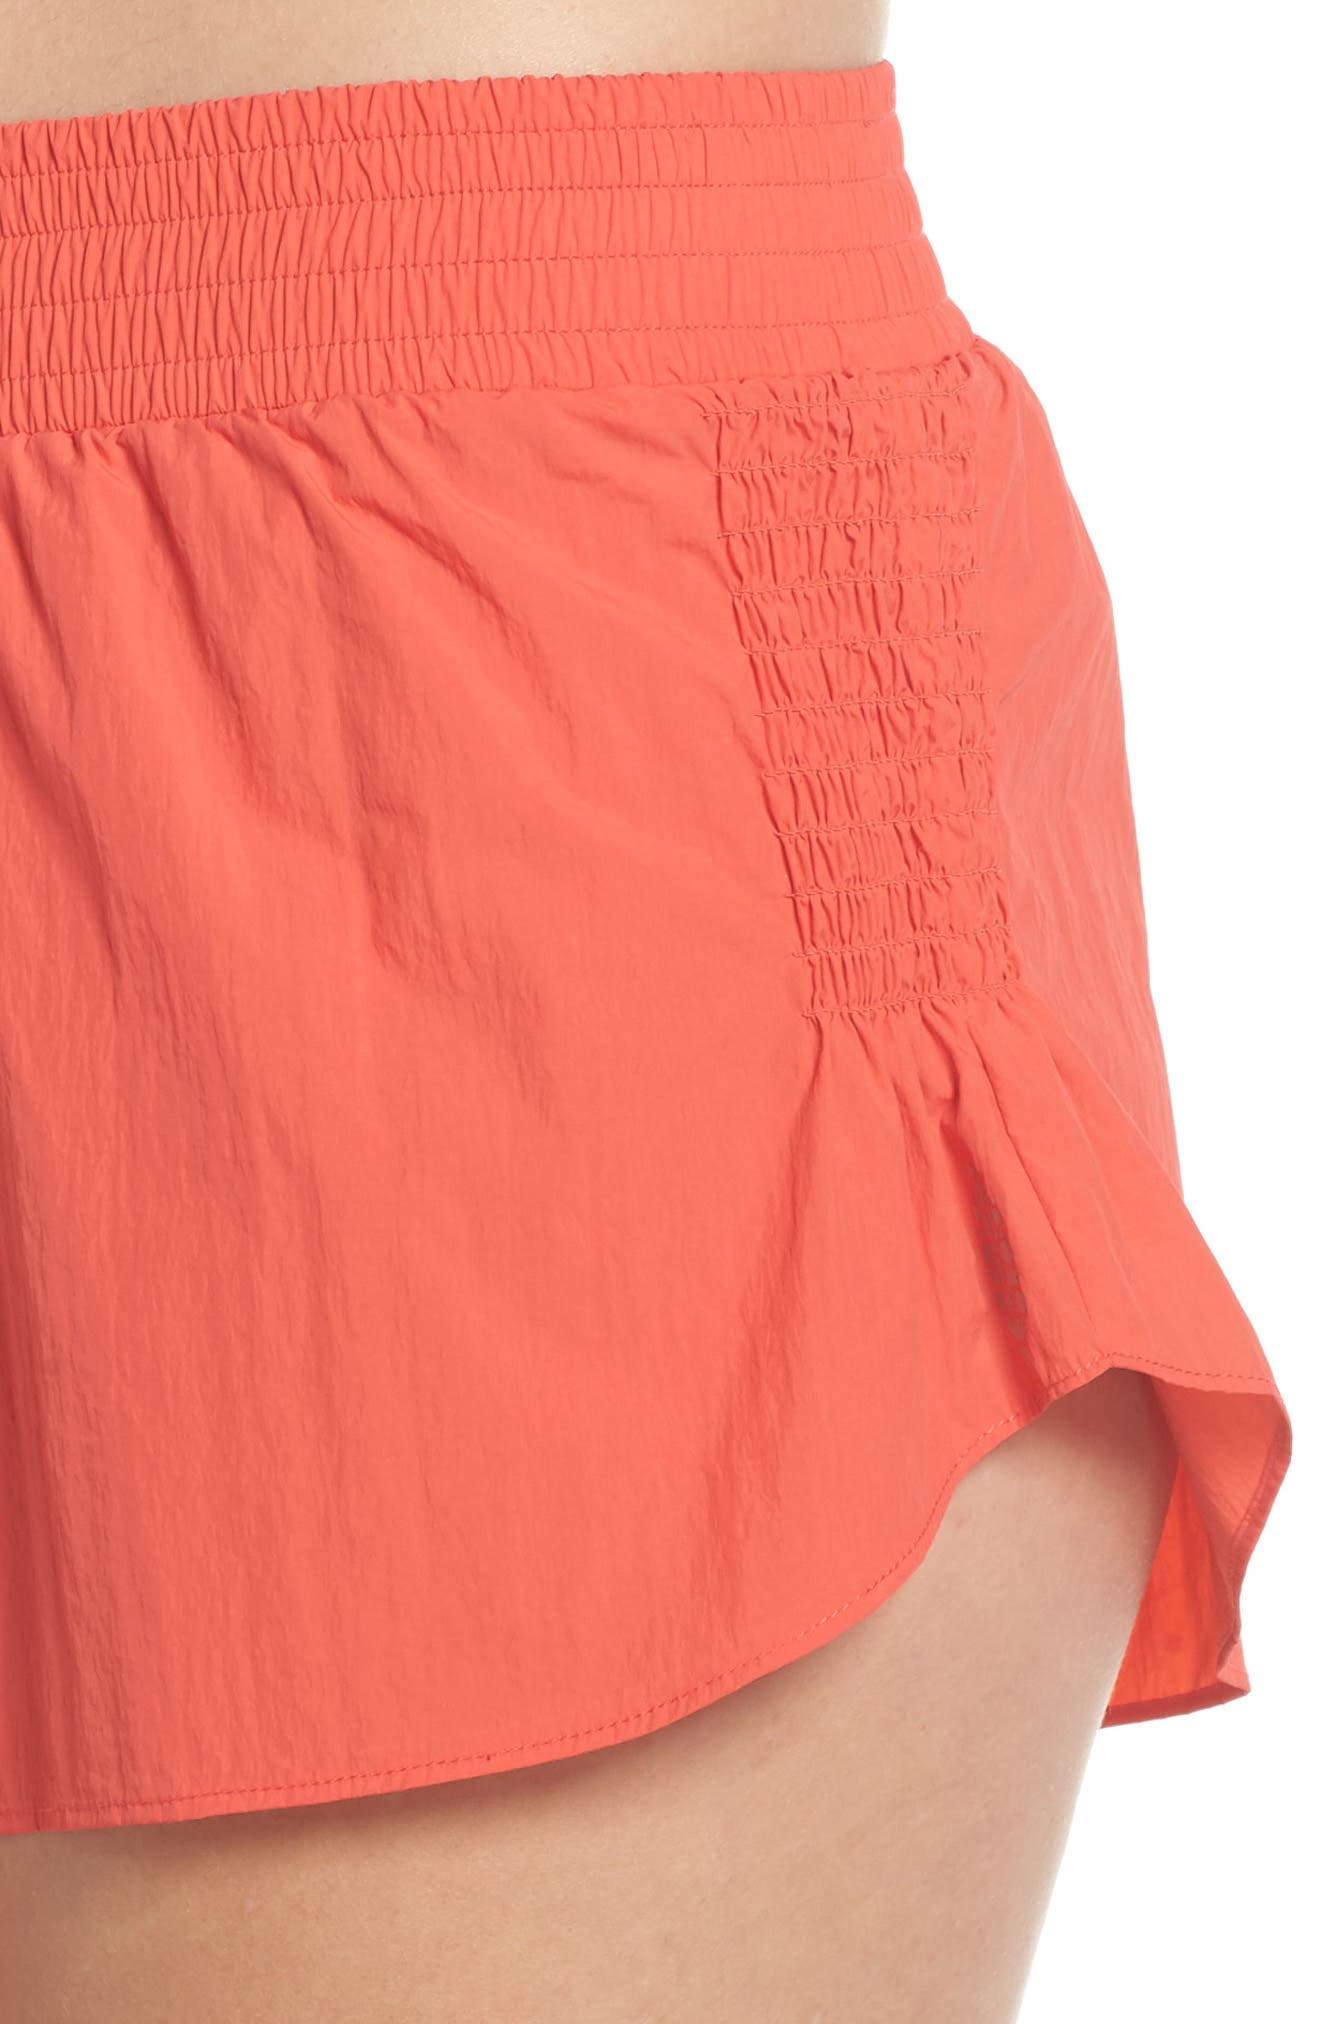 Fuji Shorts,                             Alternate thumbnail 4, color,                             CORAL